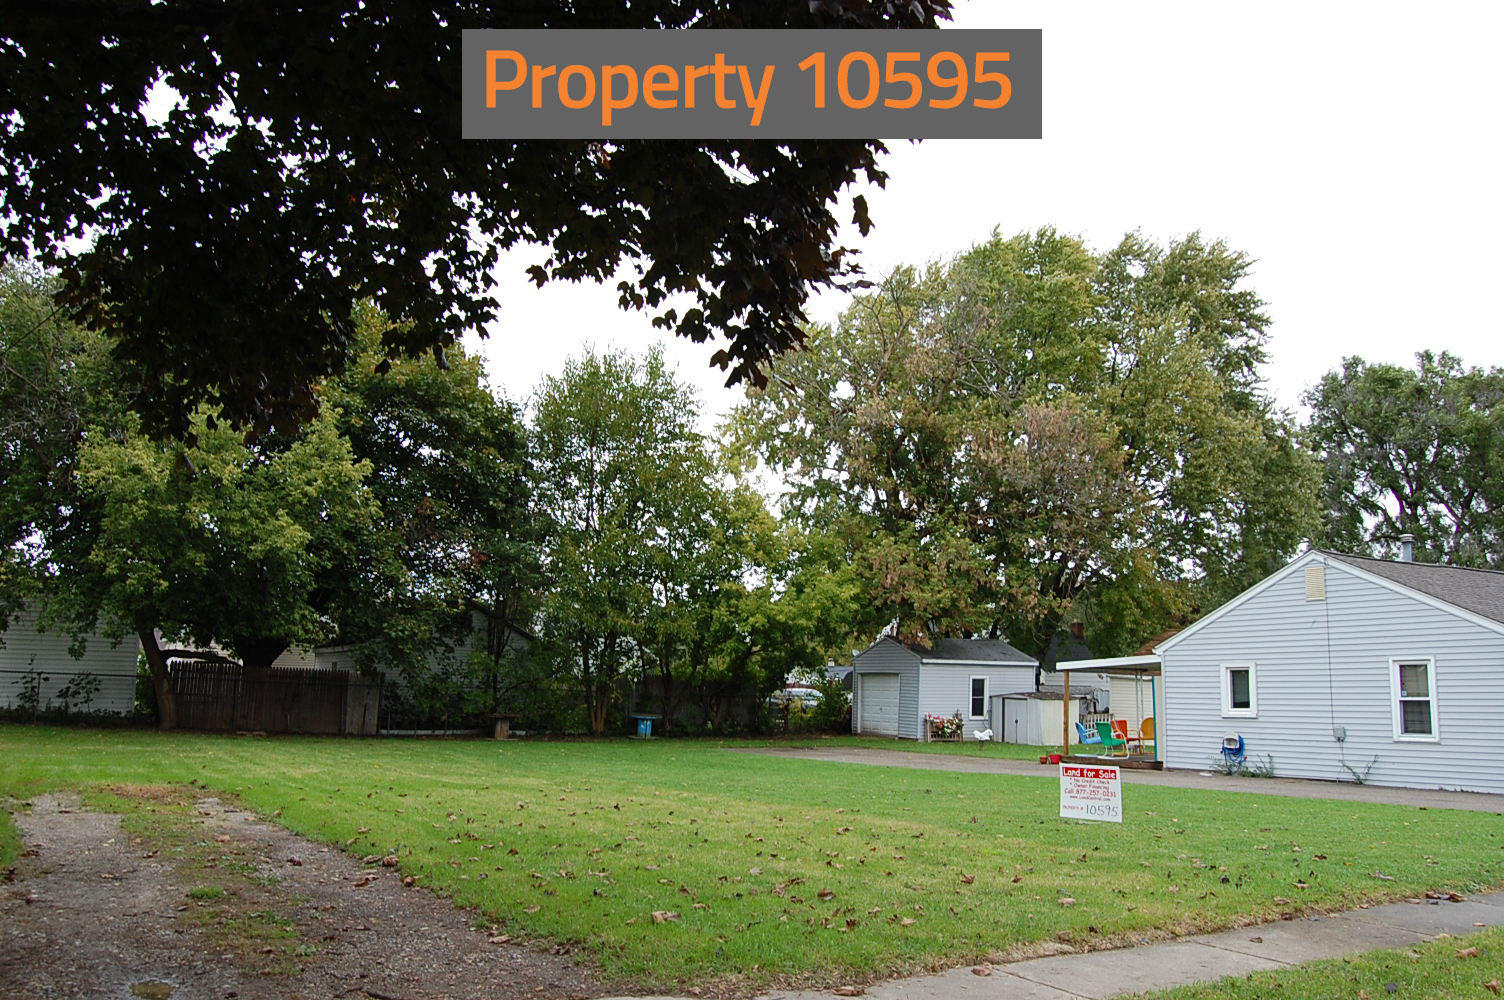 Intermediate Pack of Four Residential Parcels in Burton Michigan - Image 6